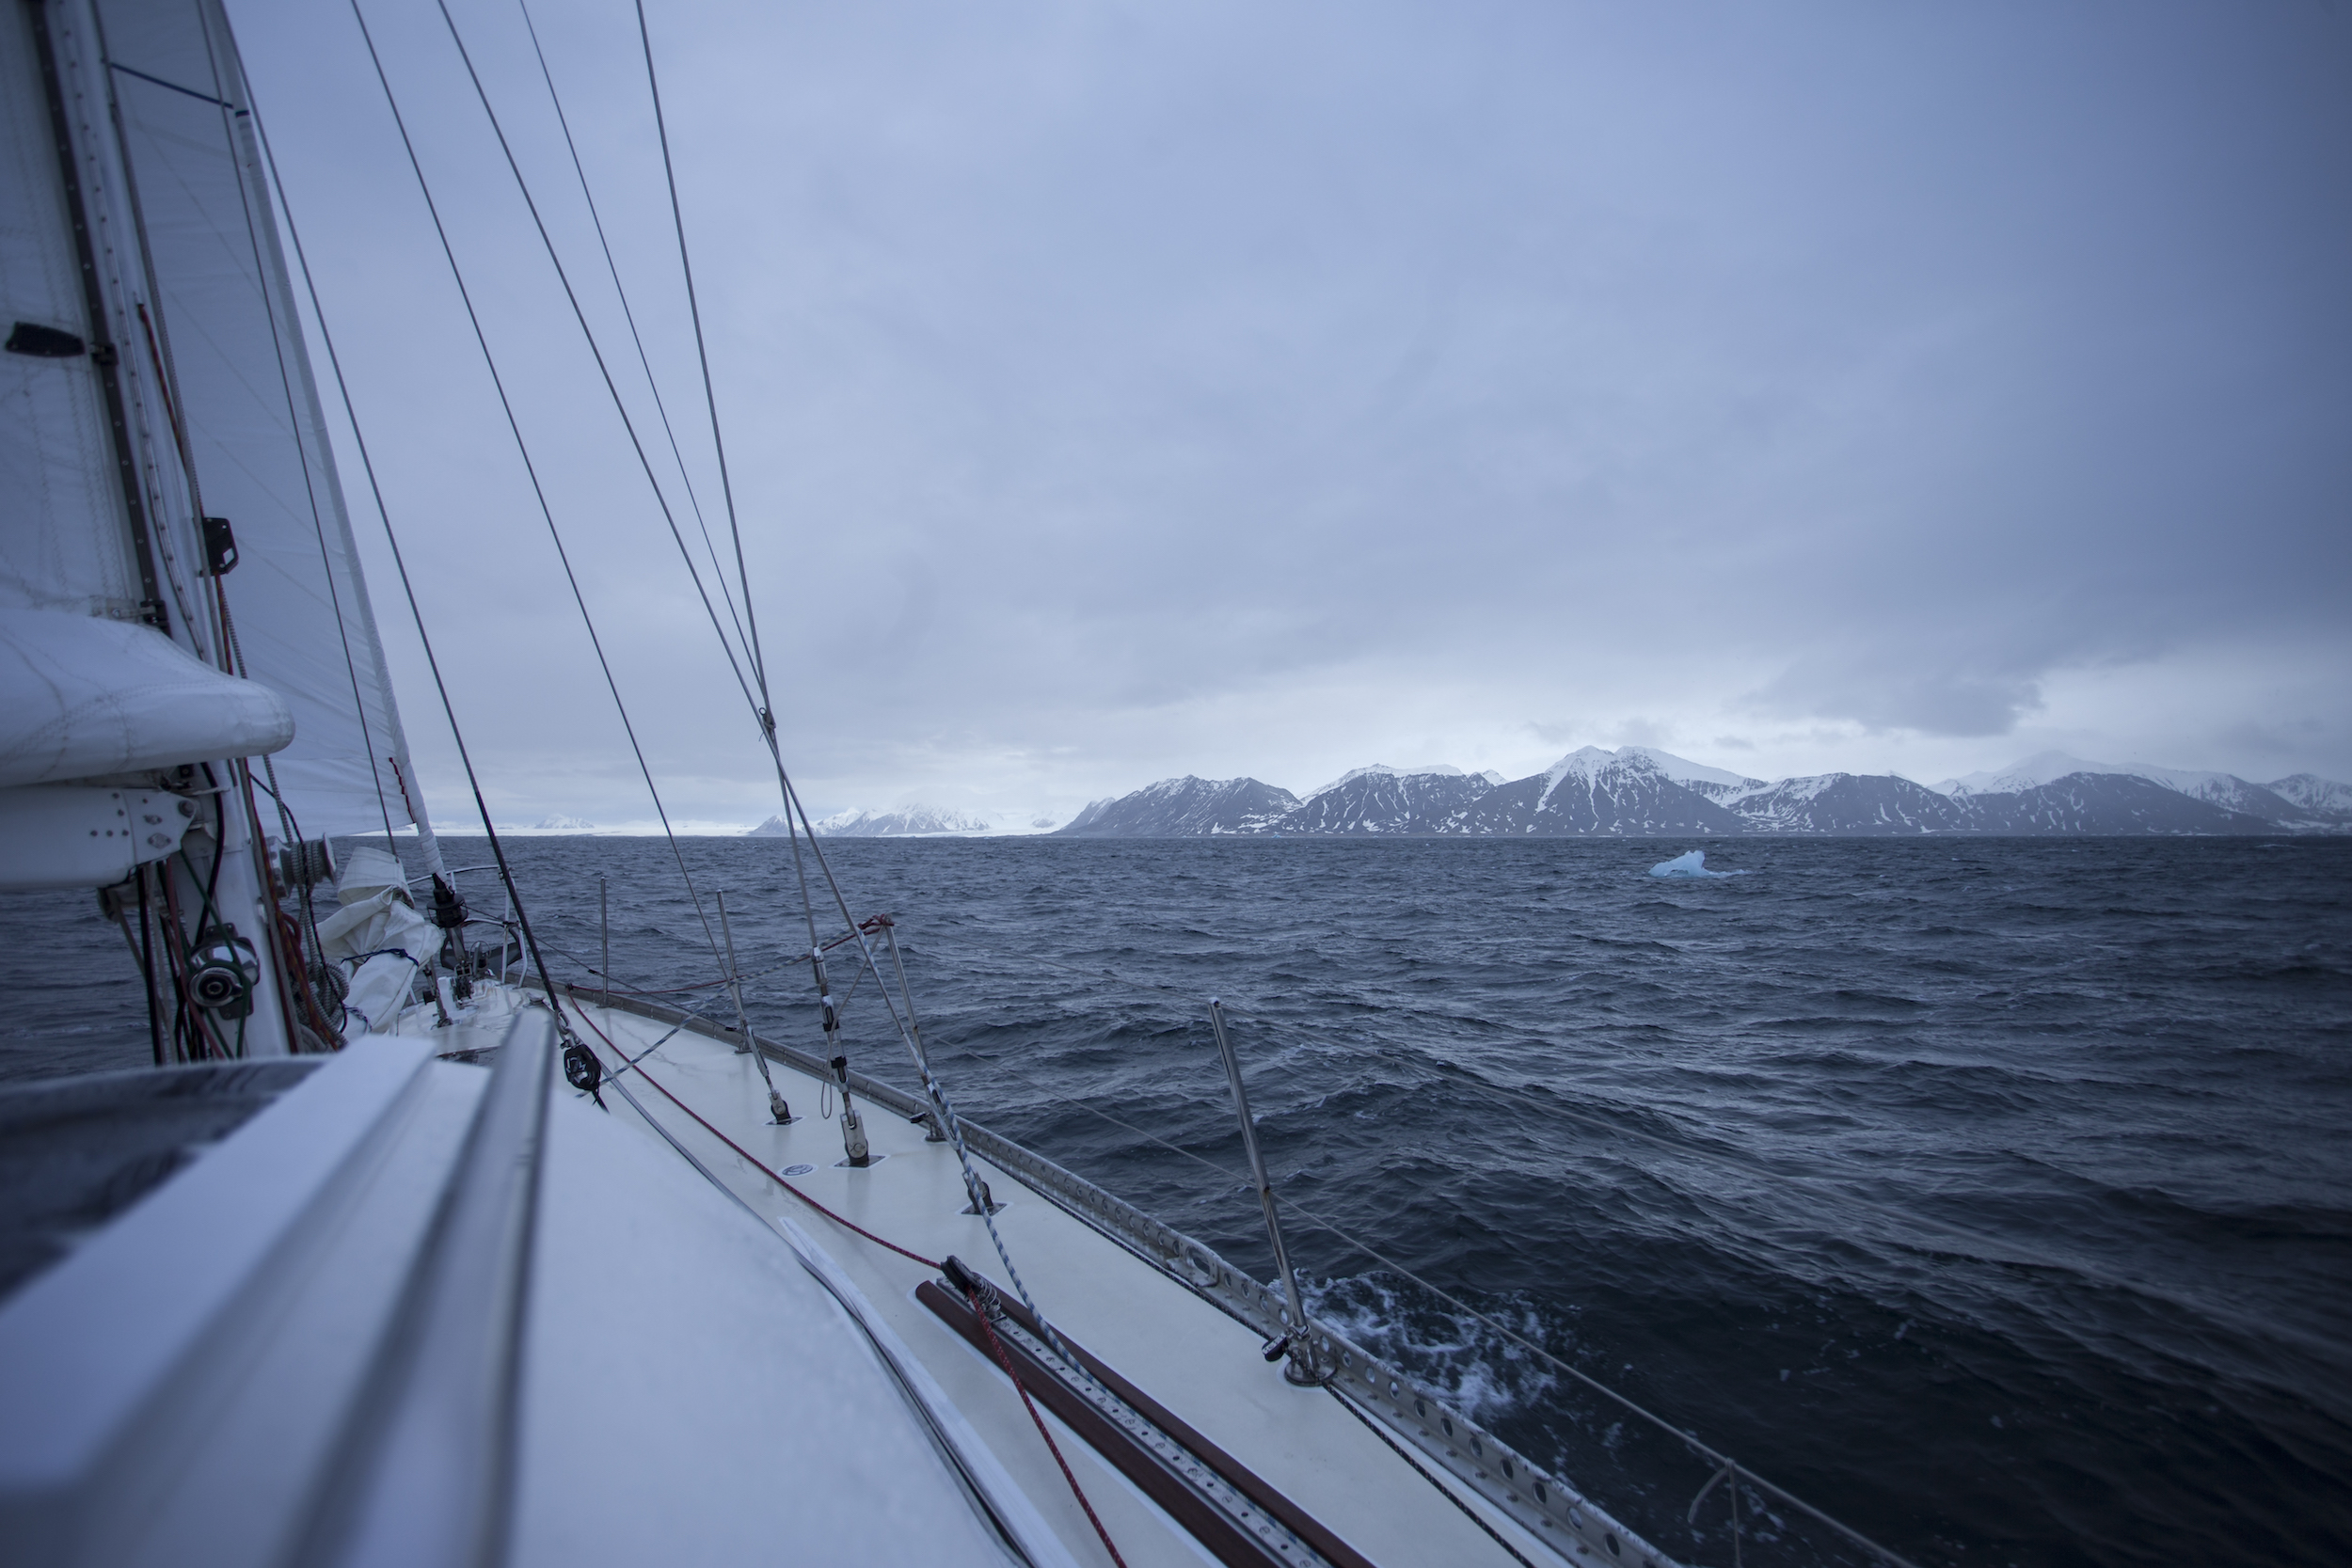 Spitsbergen in the background...glacial ICE in the foreground! We made it to the High Arctic!